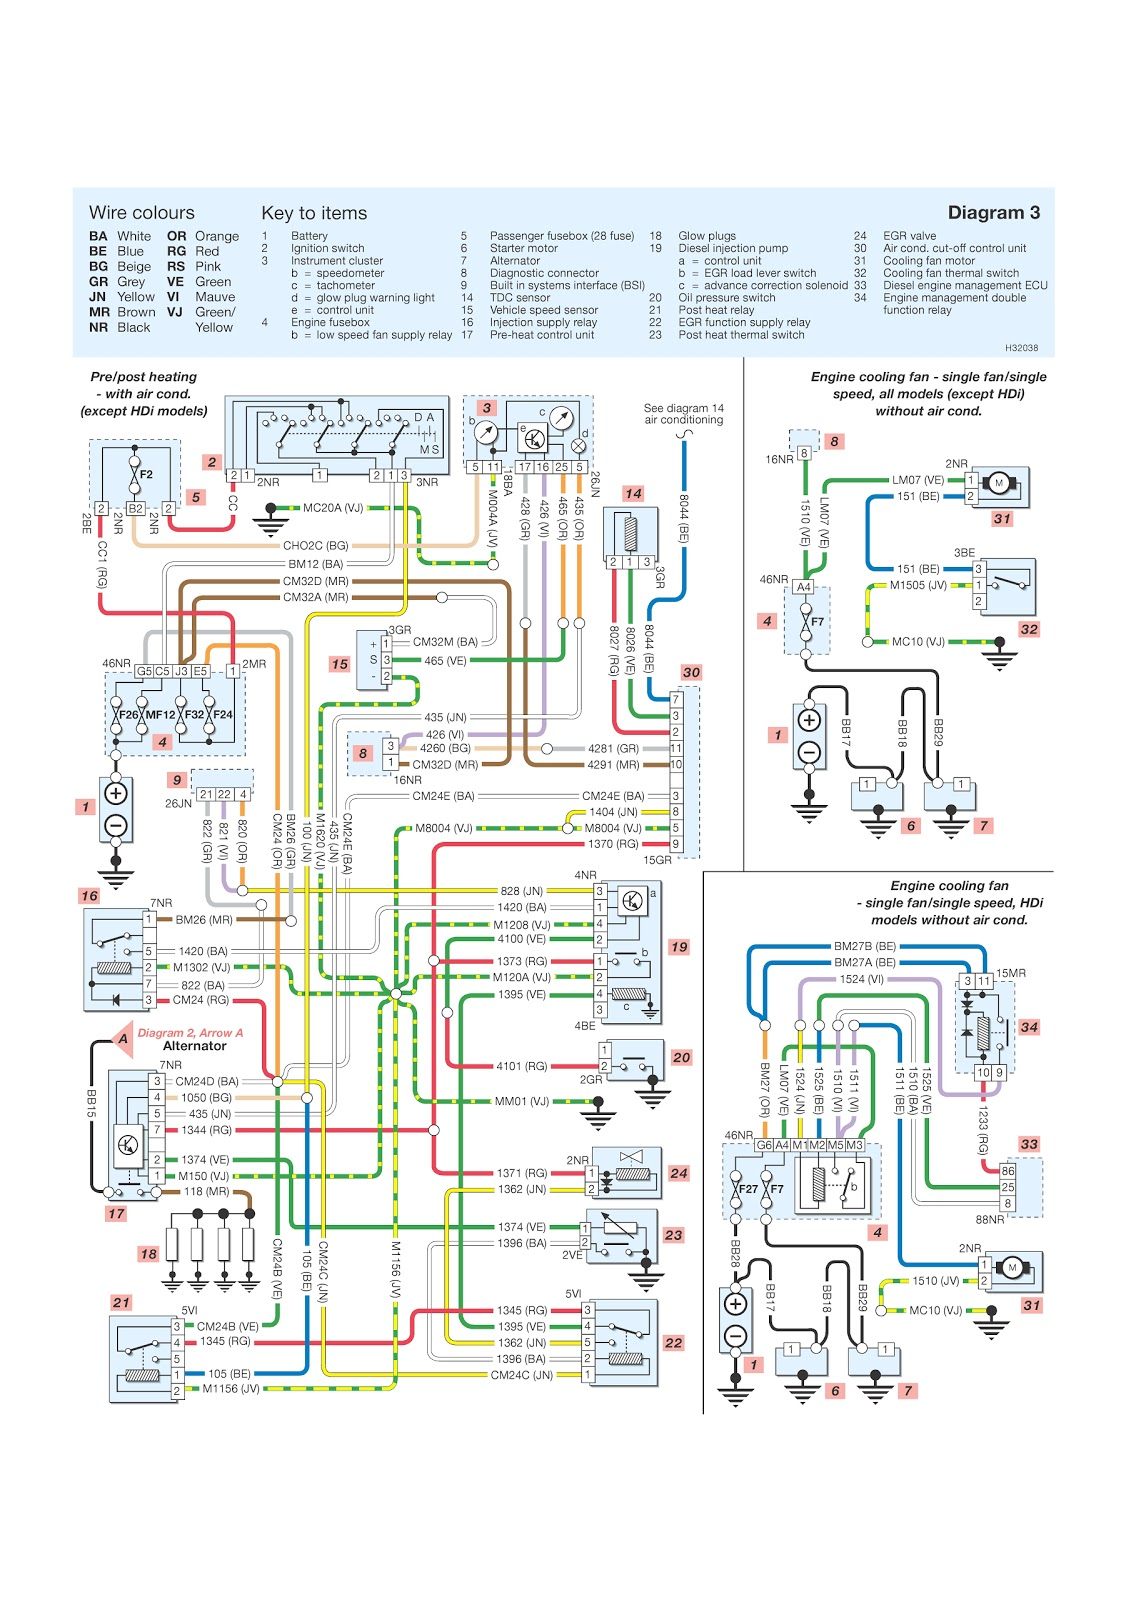 Peugeot 206 Wiring Diagrams Prepost Heating, Engine Cooling Fan | Schematic Wiring Diagrams